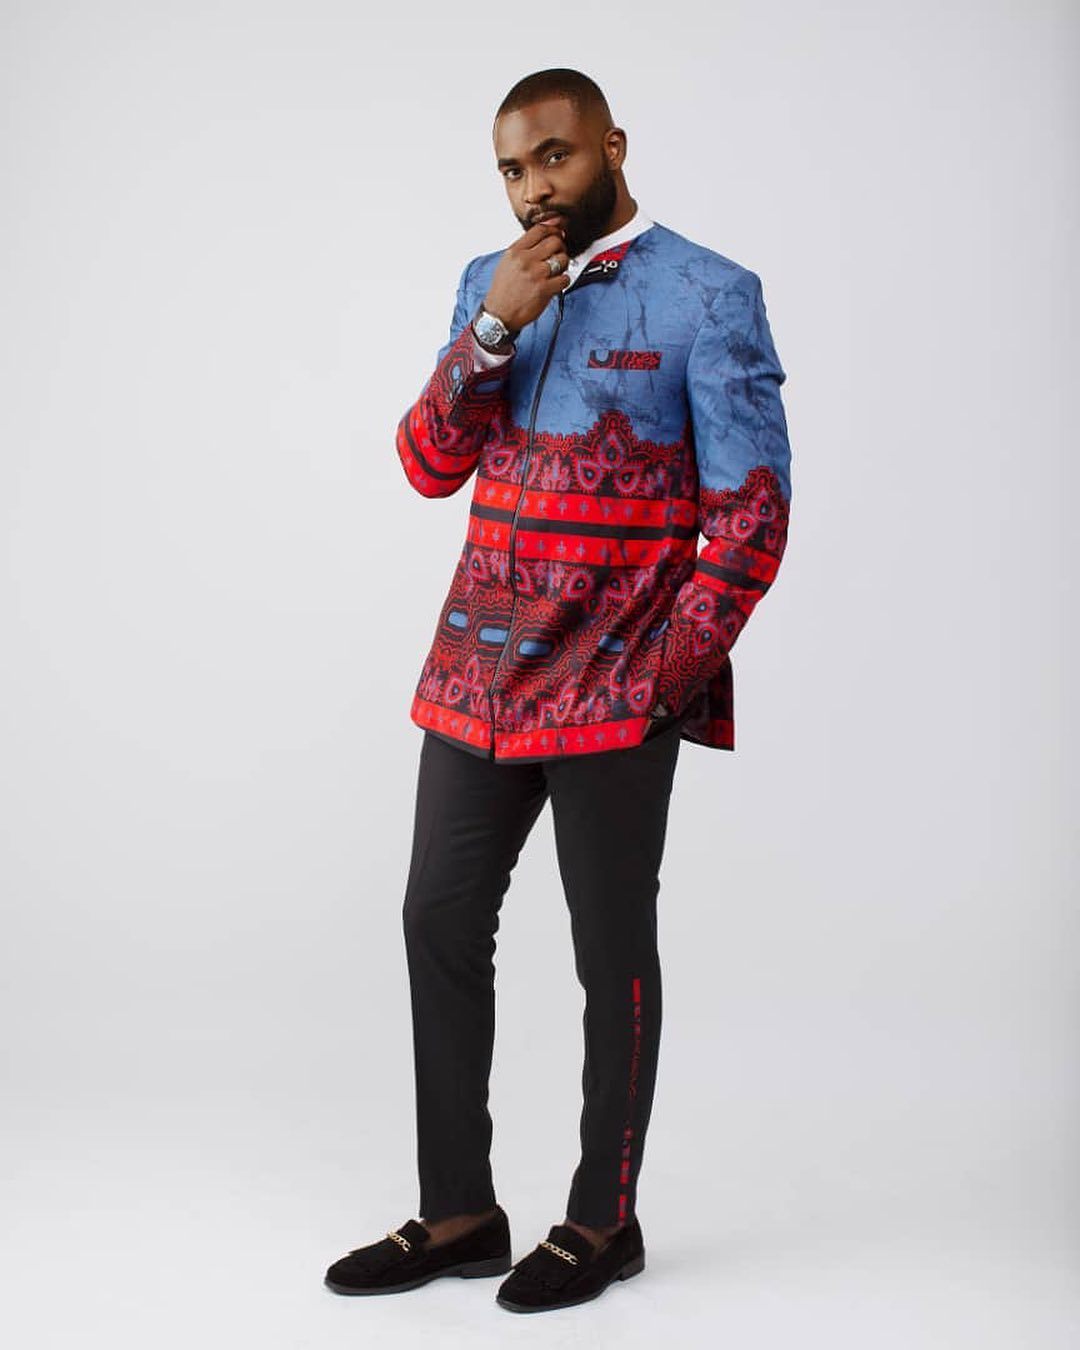 male-celebrities-africa-essence-best-dressed-face-2-face-most-fashionable-stylish-black-america-web-style-rave-2020